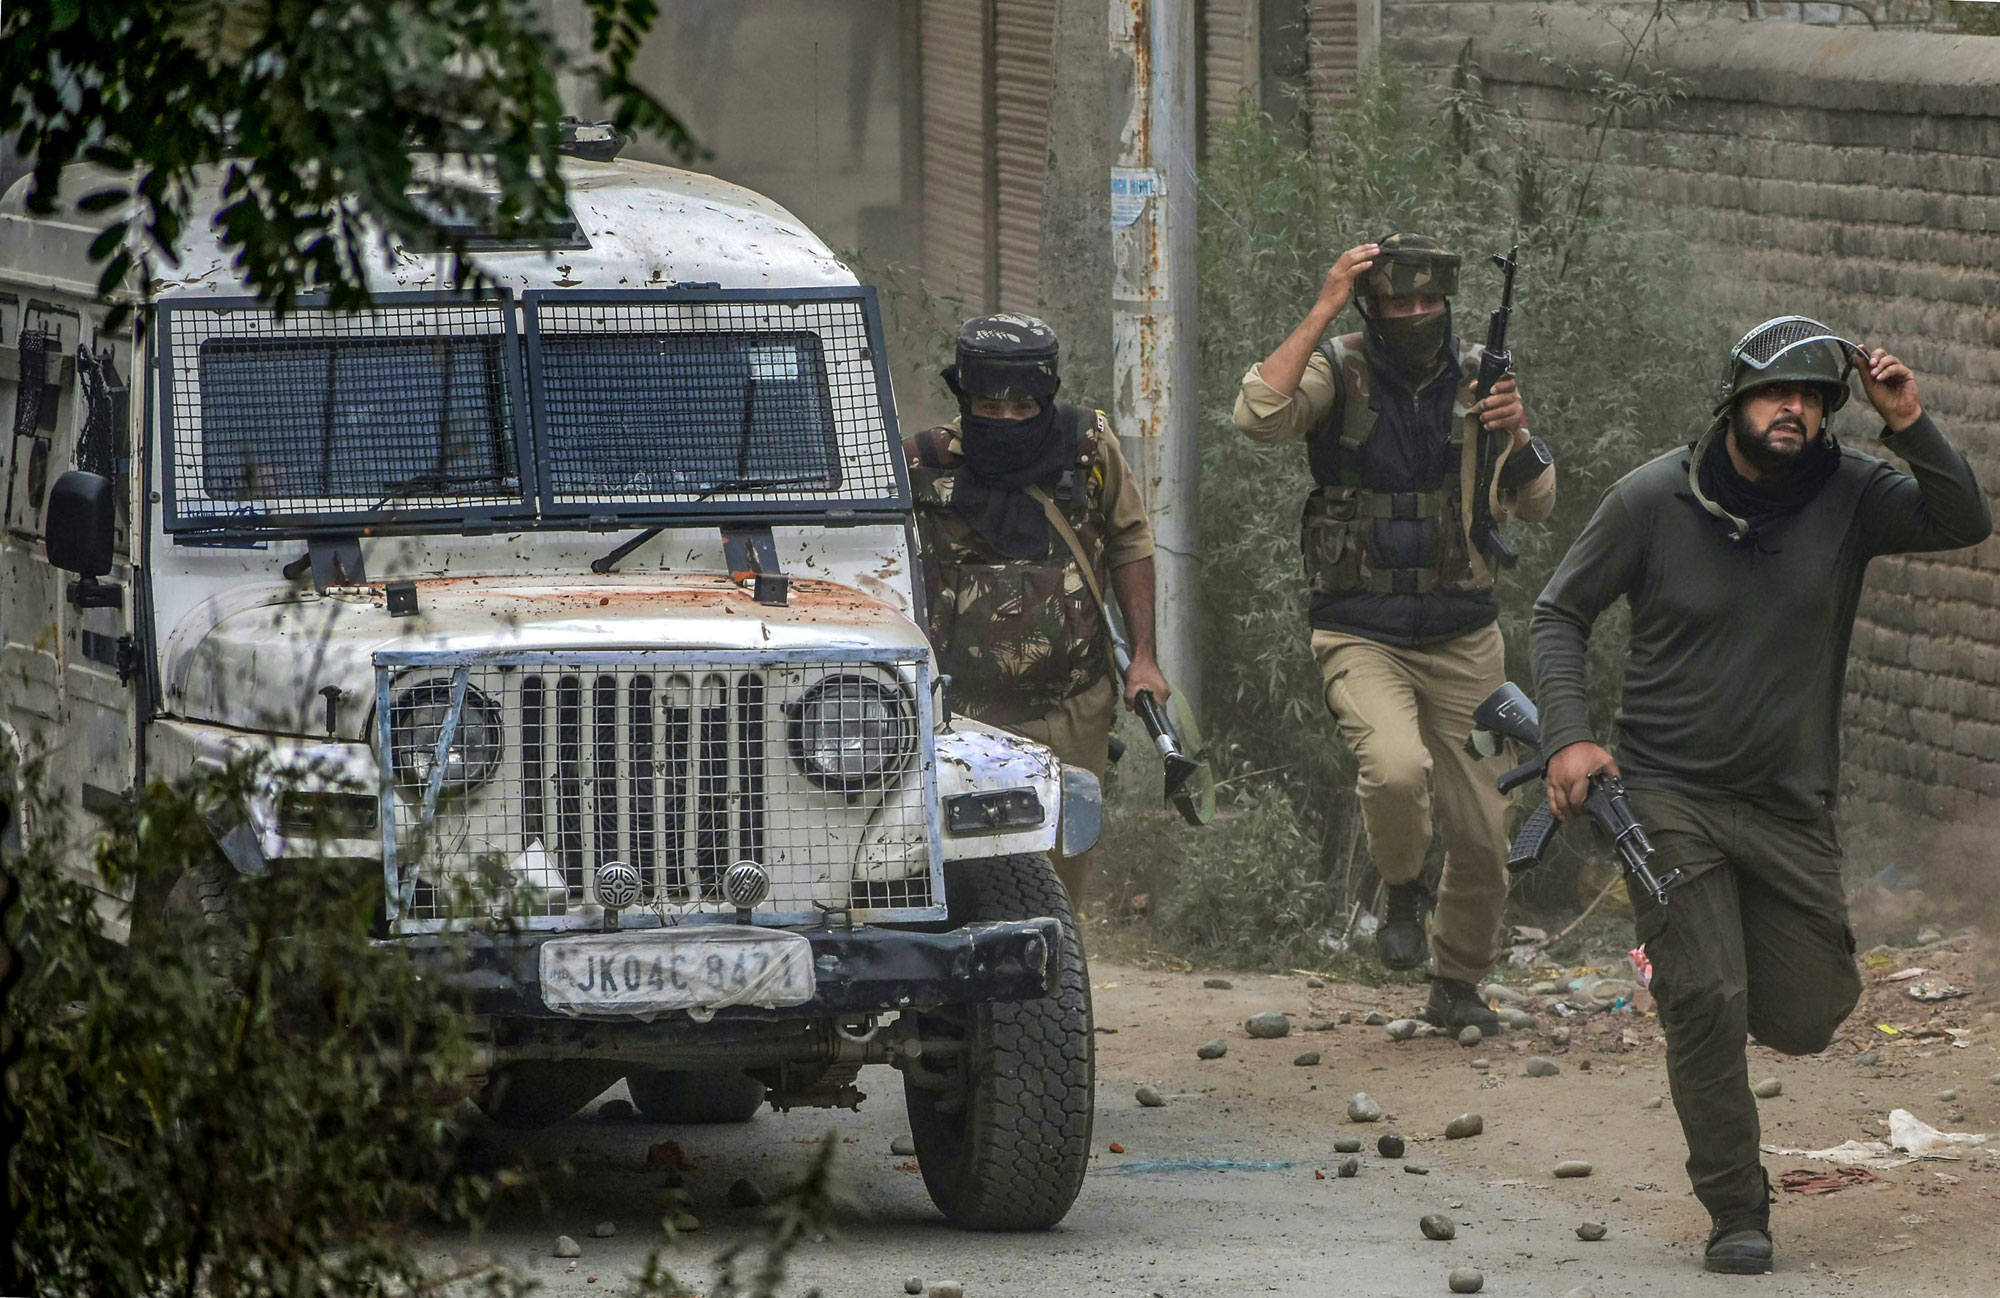 Special Operation Group of Jammu & Kashmir Police run towards the mosque where militants were hiding during an encounter at Panzan Chadoora area of Budgam district near Srinagar, on Thursday.